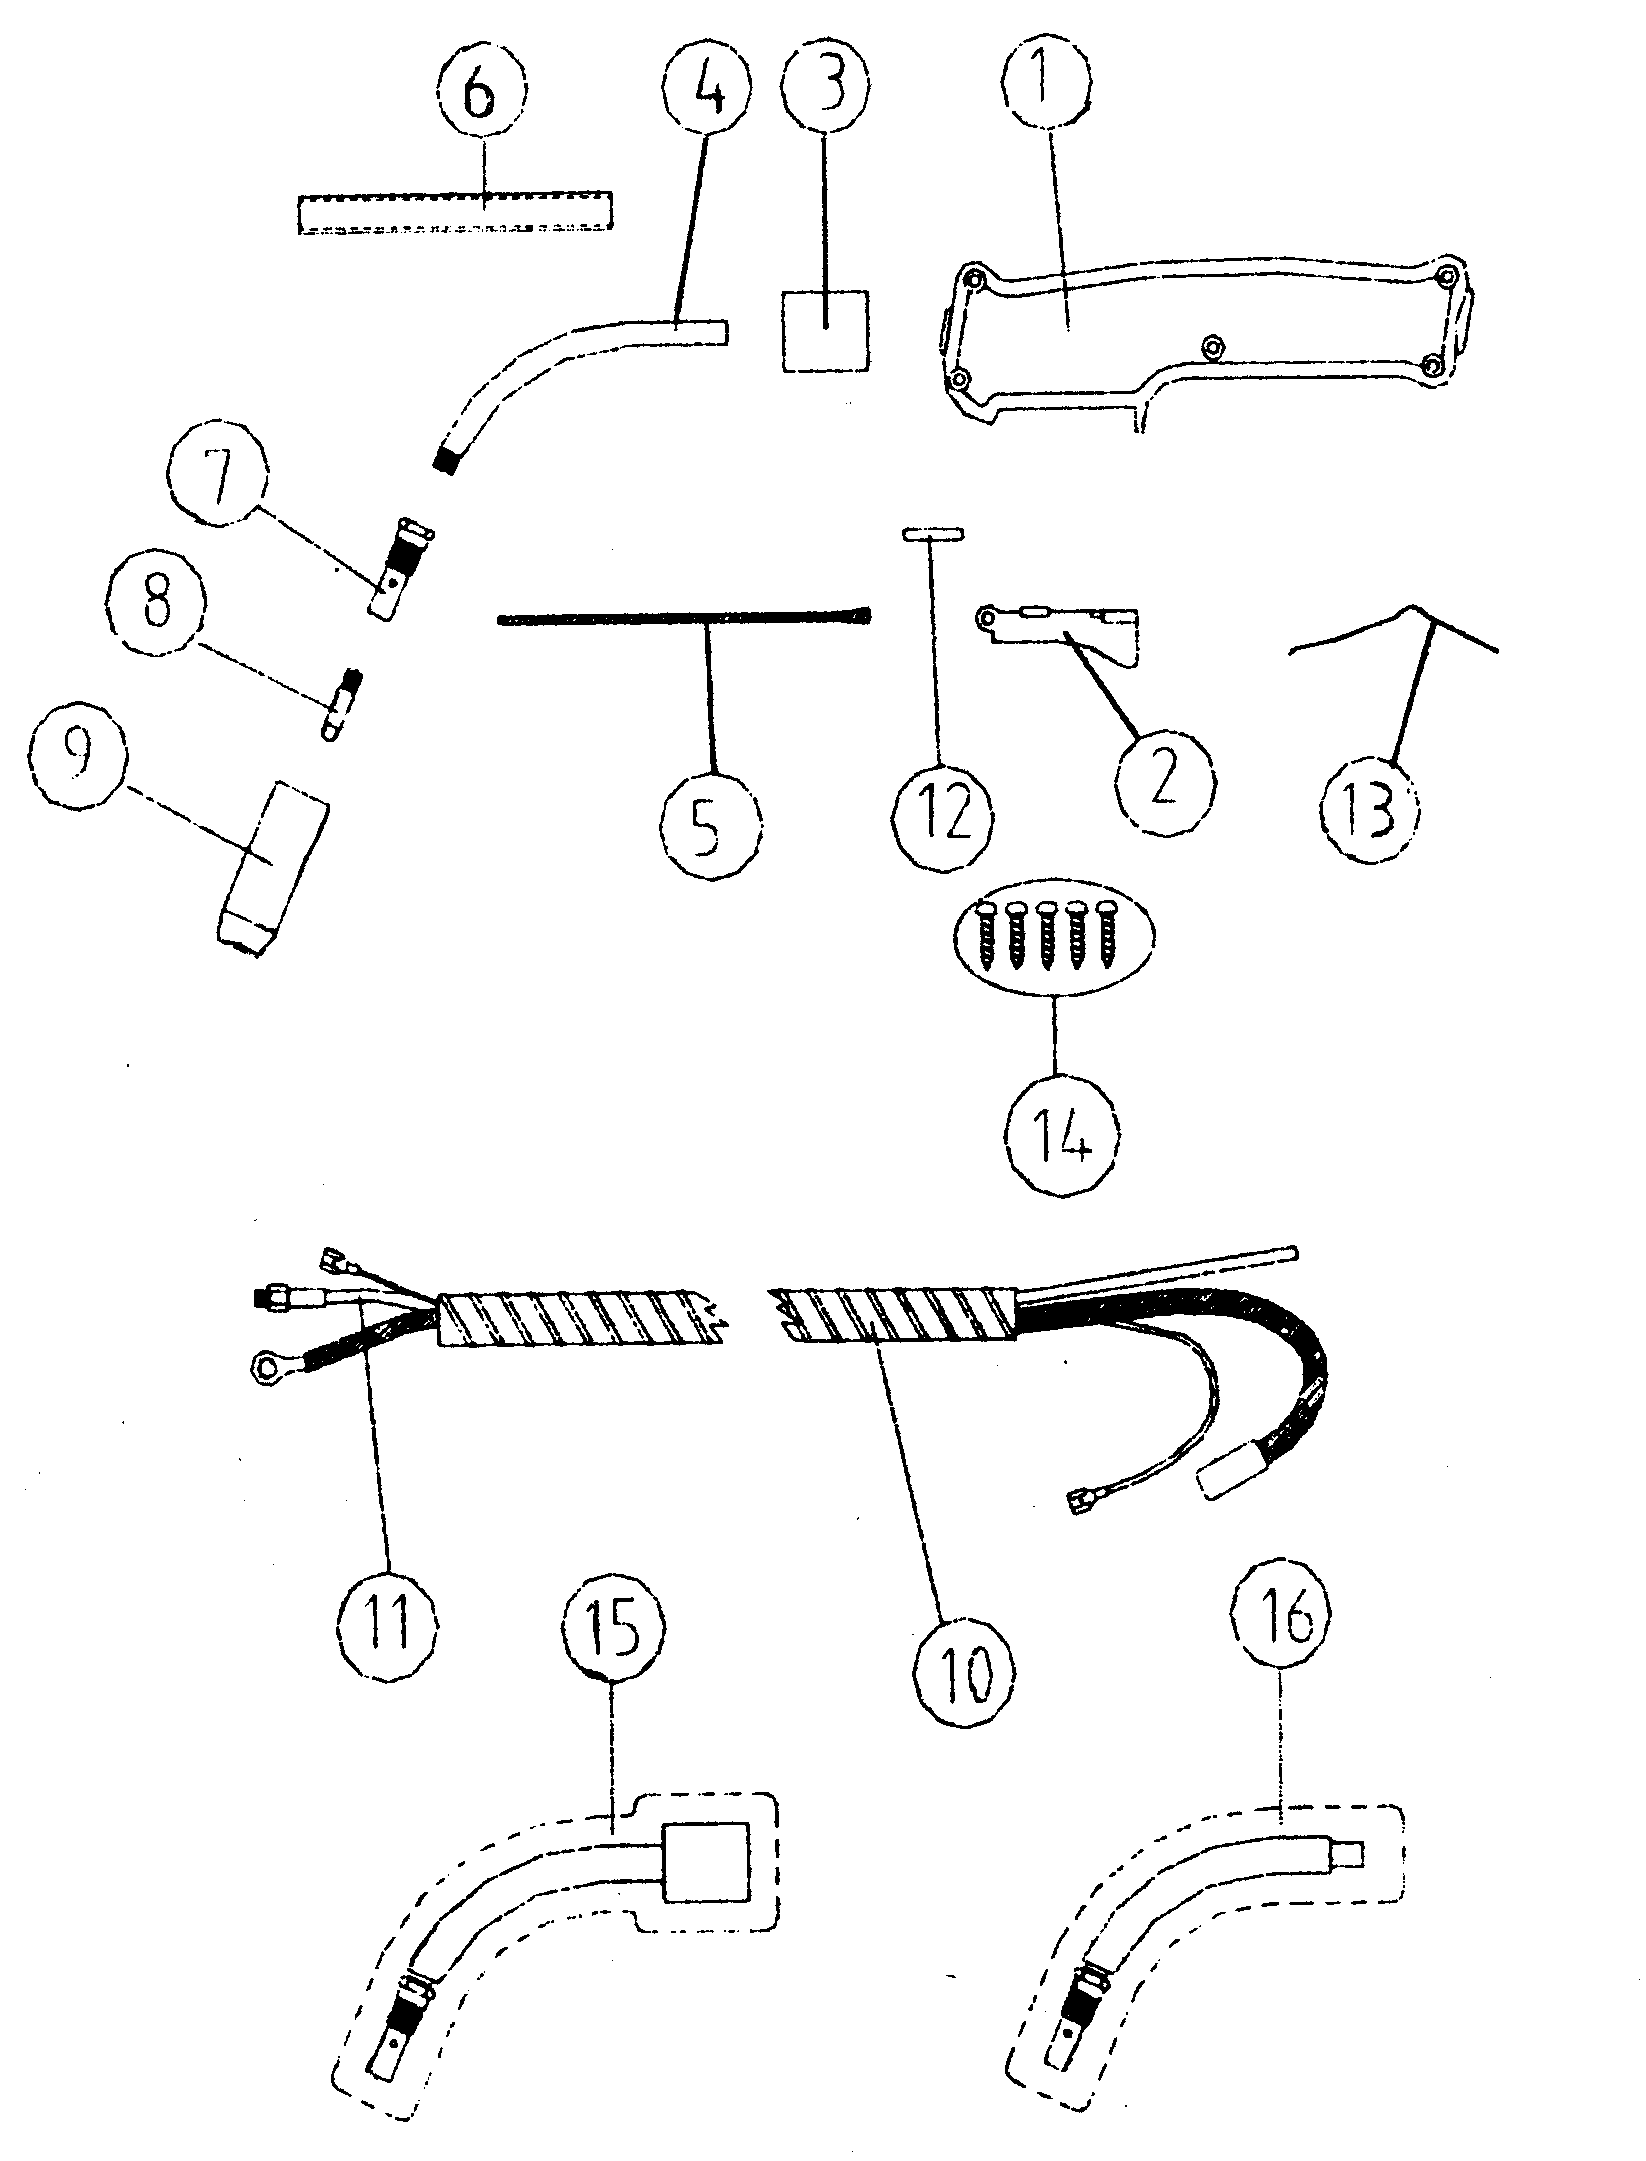 TORCH SPARE Diagram & Parts List for Model 196205660